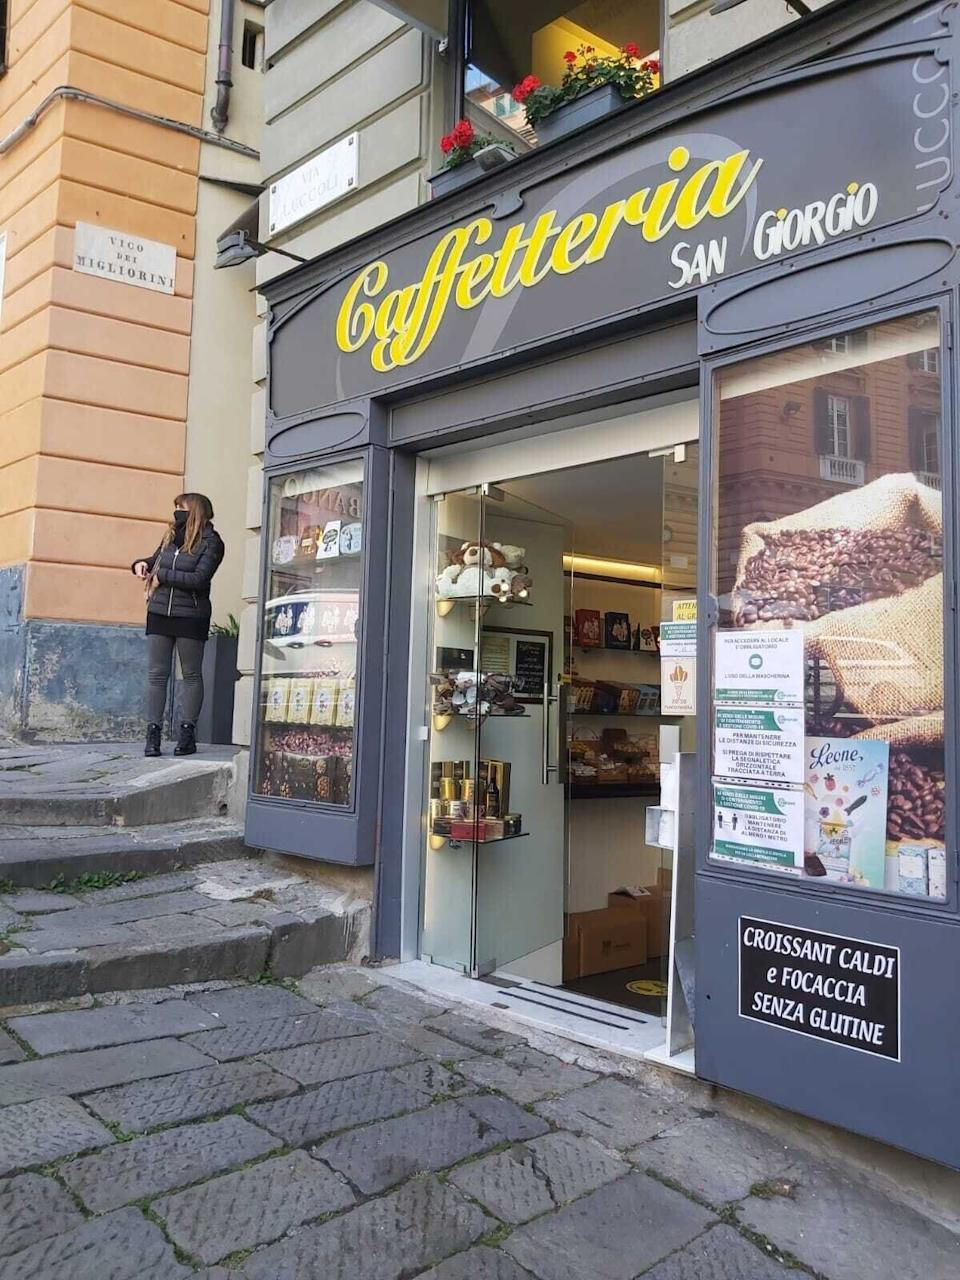 Una caffetteria di via Luccoli (Photo: Huffpost Italy)